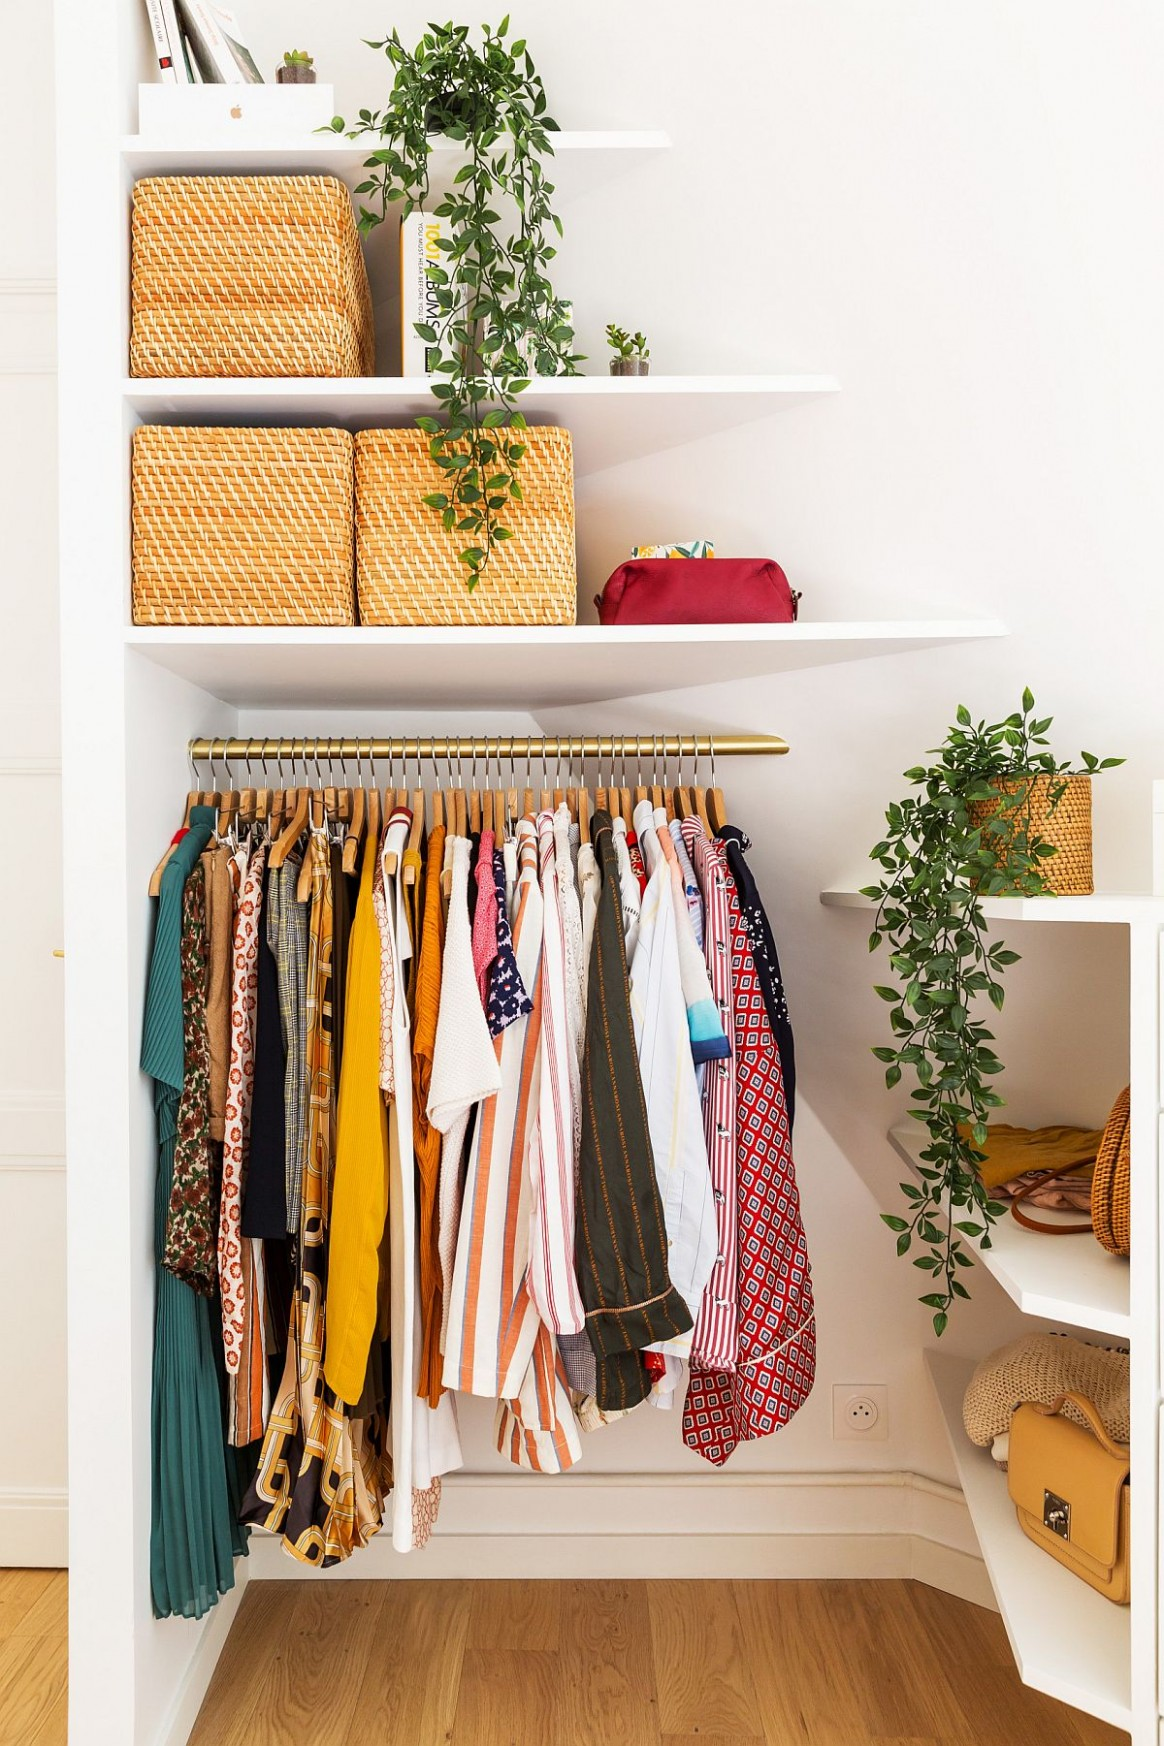 12 Small Apartment Closet Ideas that Save Space with Innovative Design - Closet Ideas In Bedroom